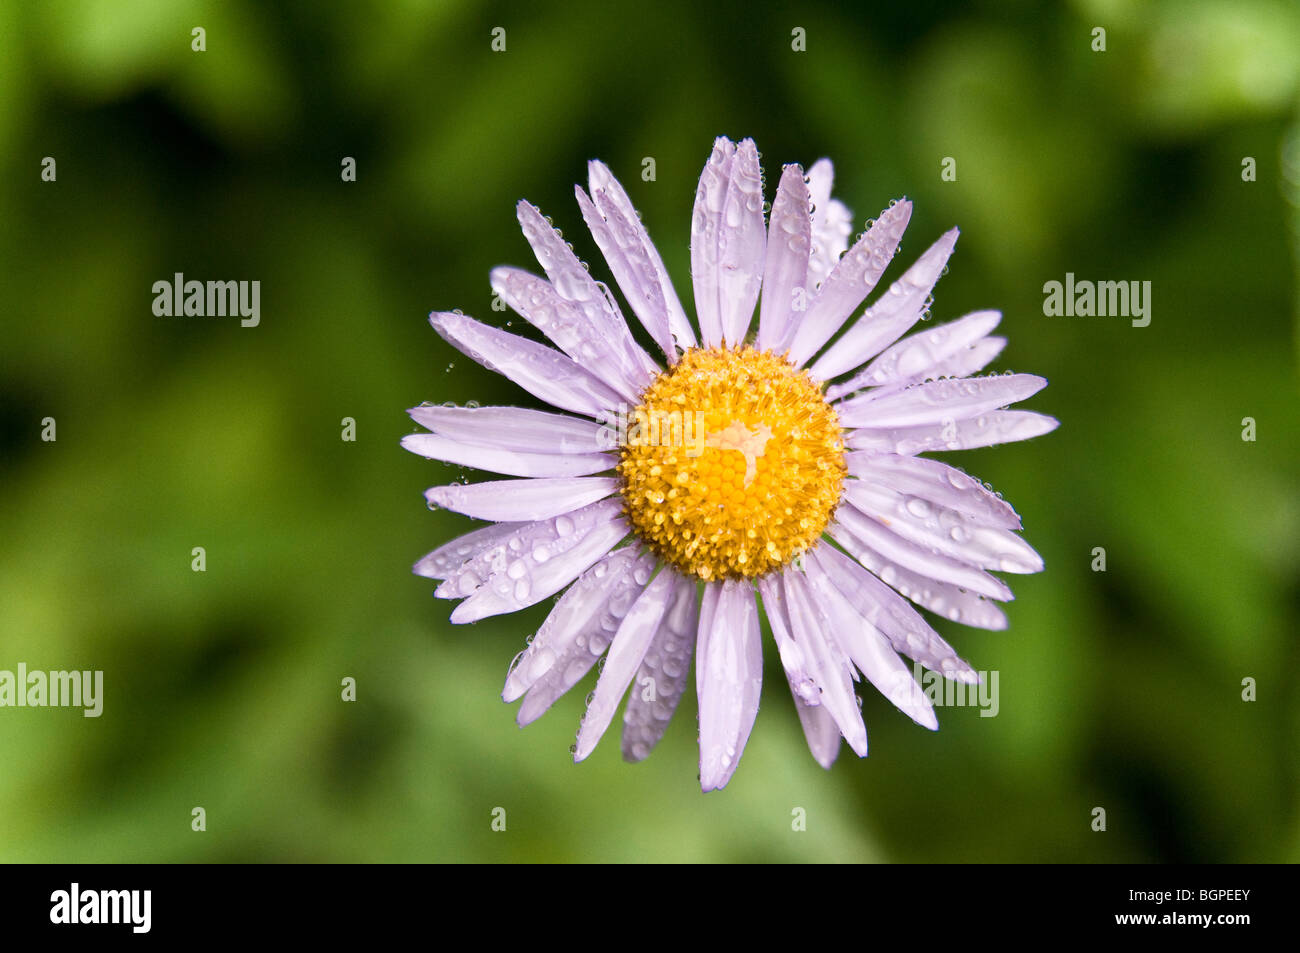 Alpine aster, Takh Takh Meadow, Gifford Pinchot National Forest, Washington. - Stock Image